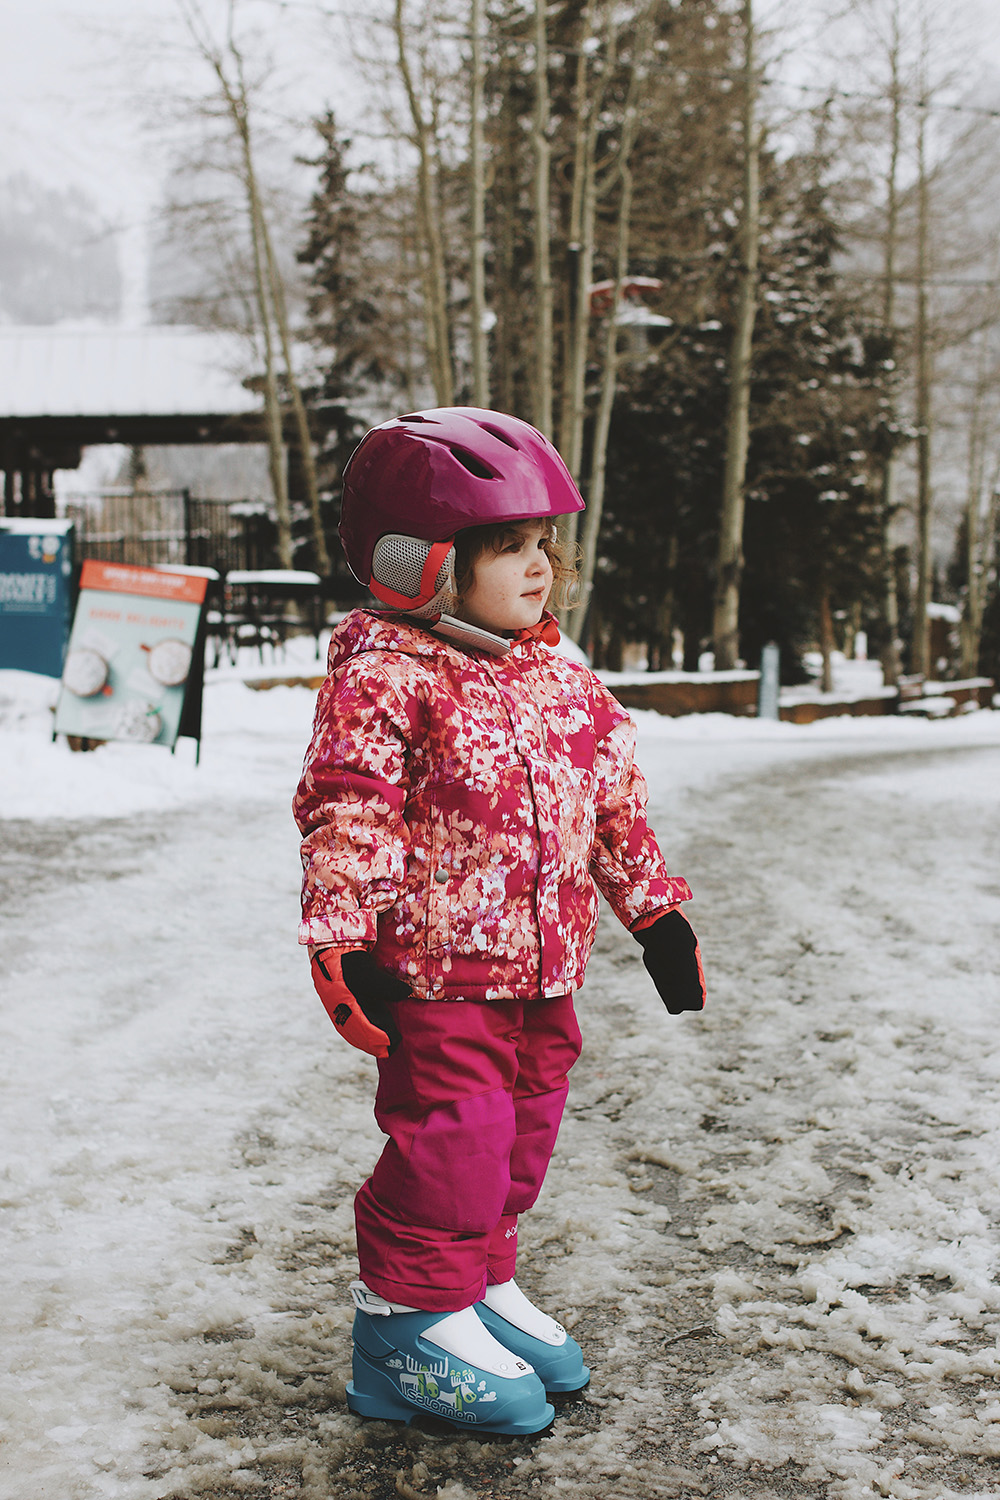 A child gets ready for her day of skiing at Copper Mountain